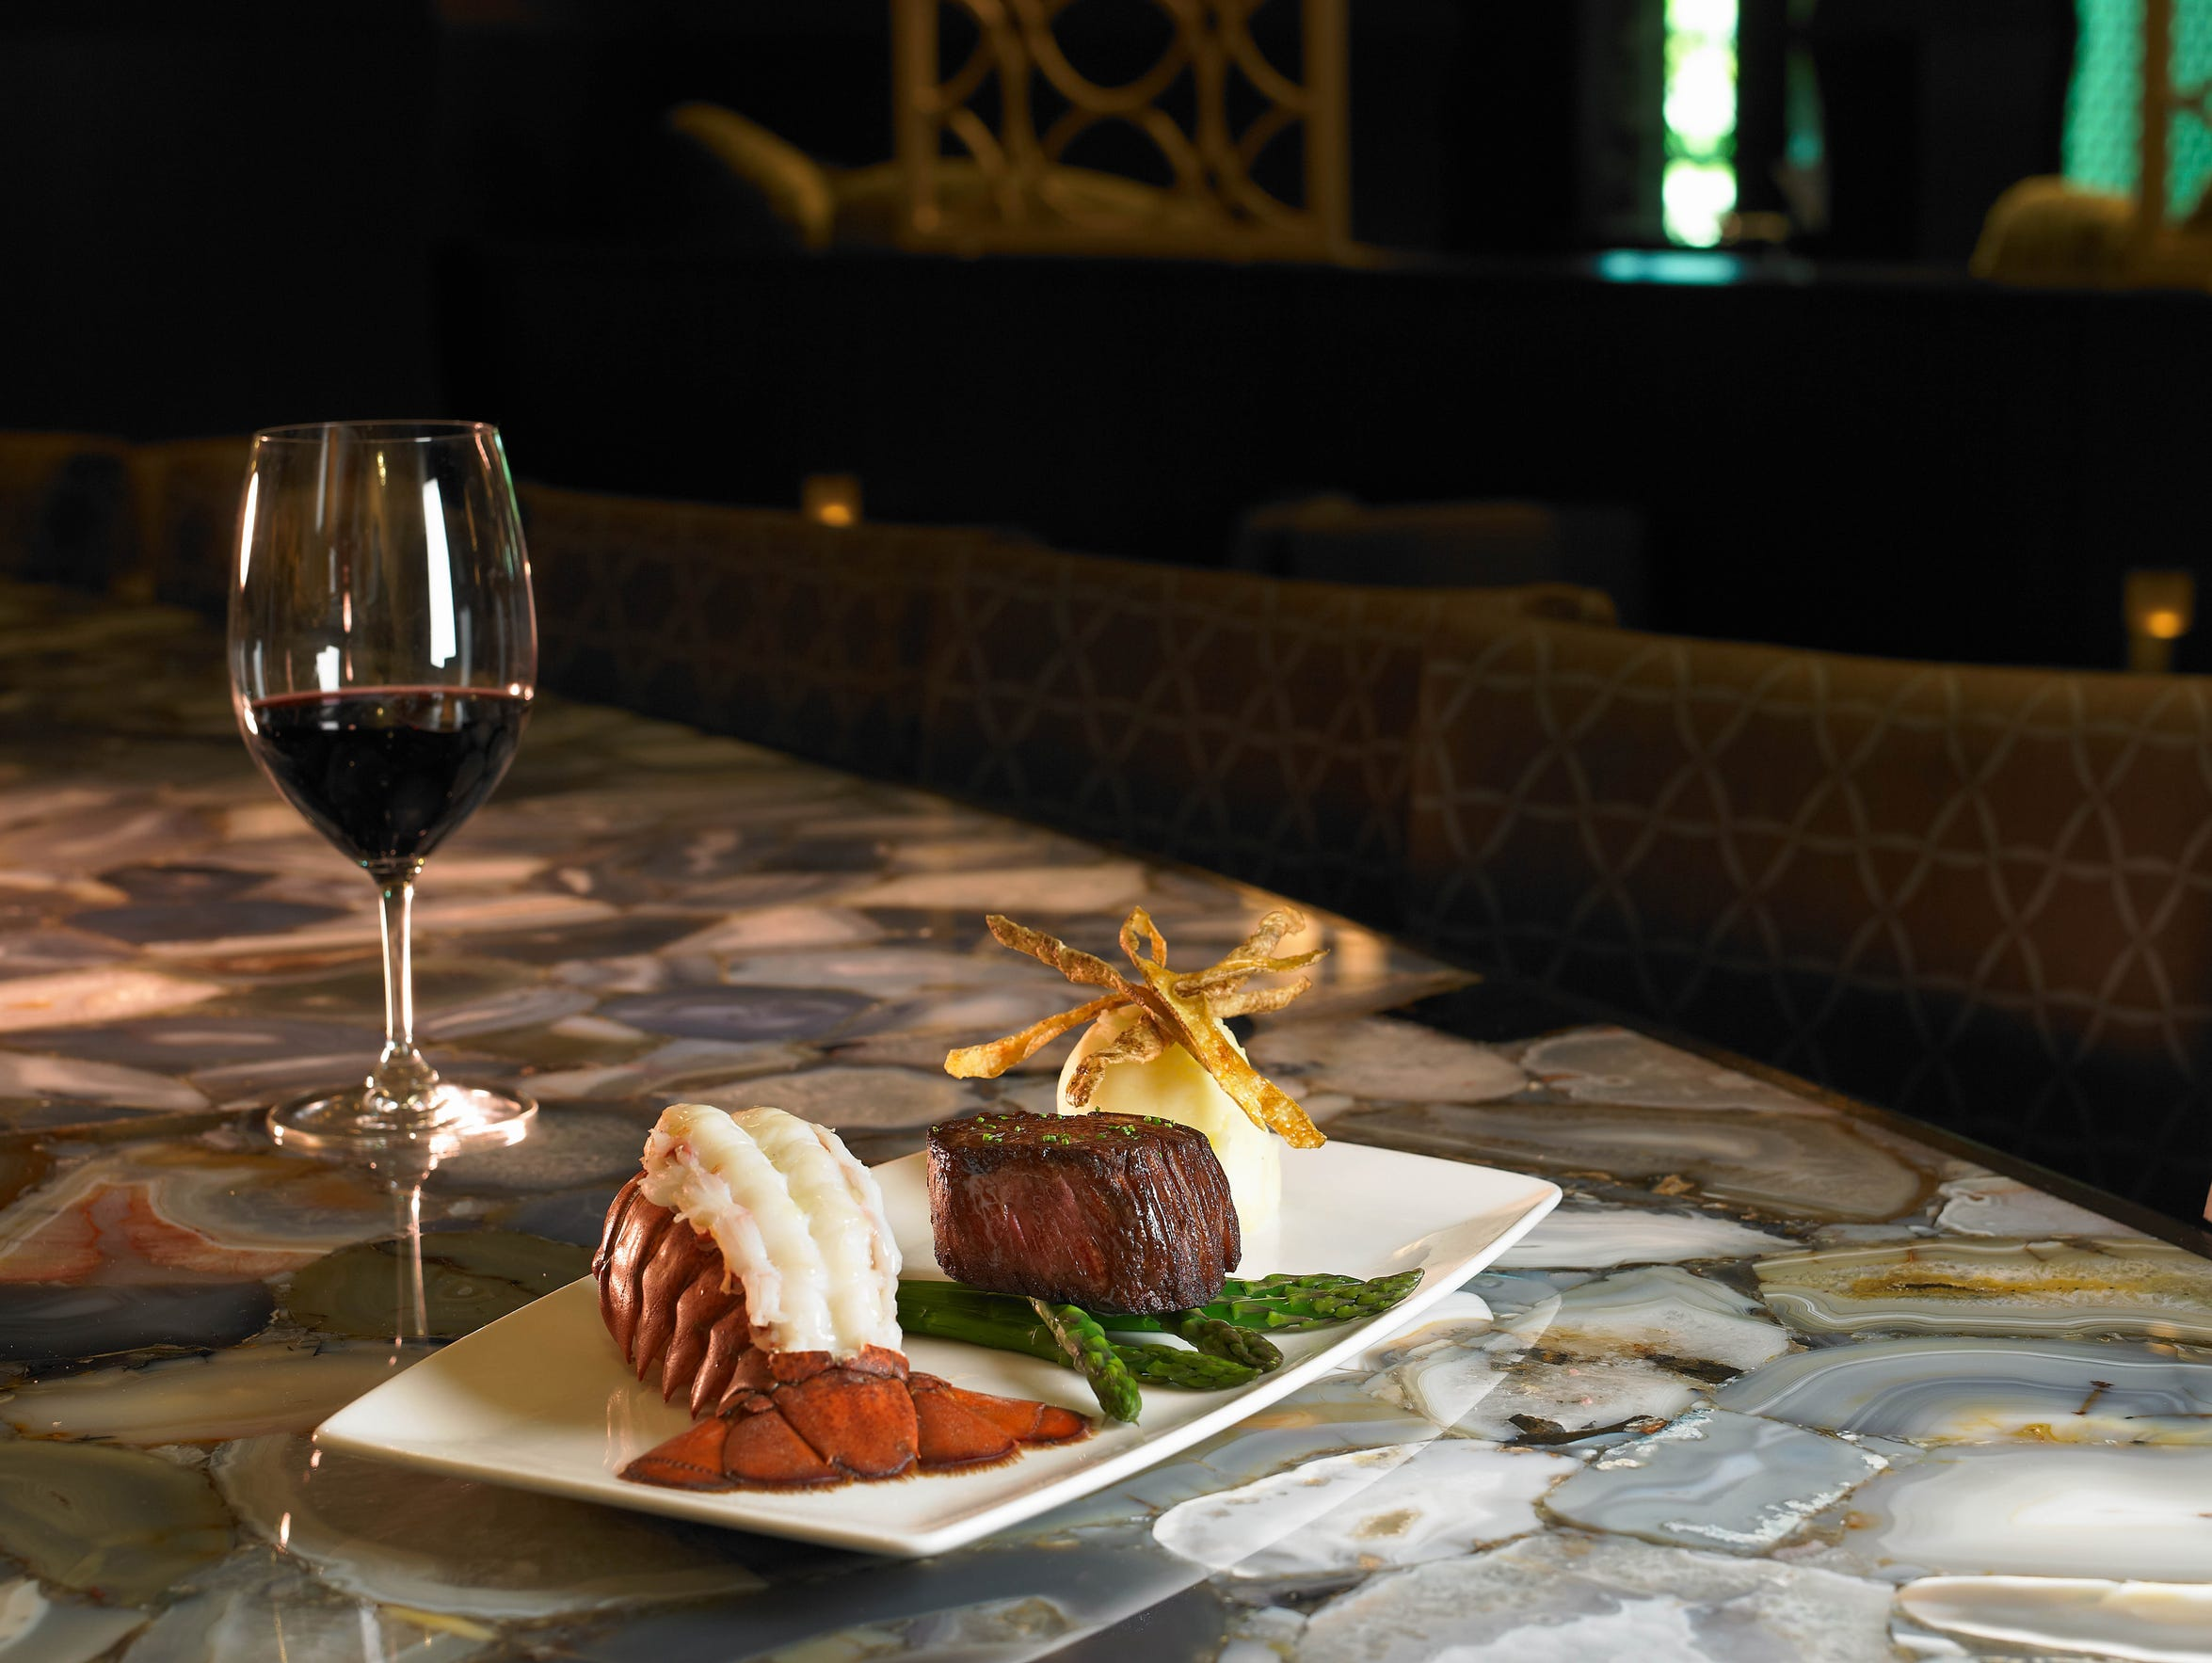 Surf 'n' Turf  5 oz. filet, 5 oz. lobster tail from